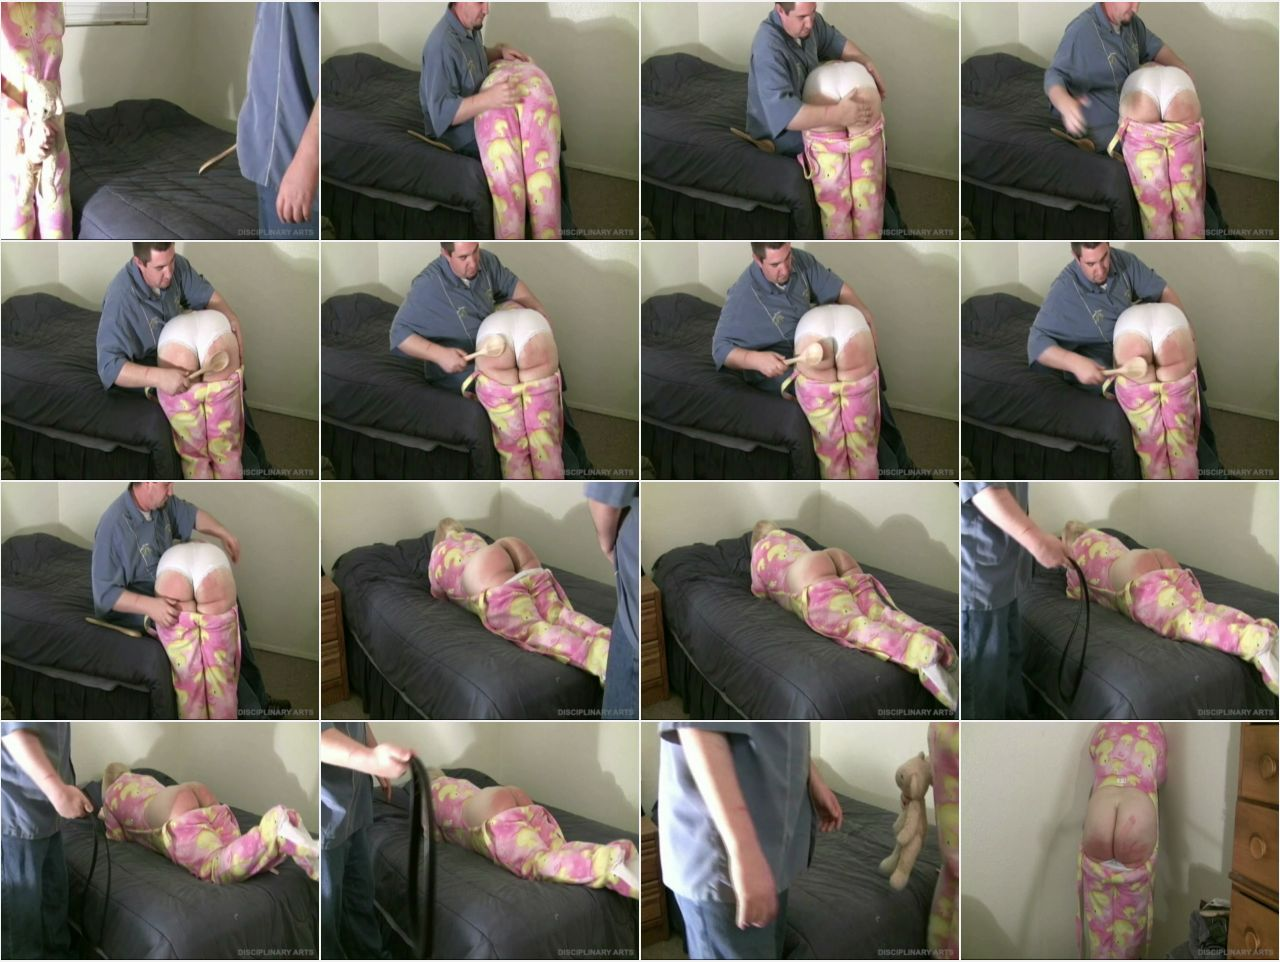 6091 f dp 2000 DA screen - Disciplinary Arts - MP4/SD – Lily Starr, Robert Wolfe - Dropseat Discipline: Lily Spanked By Robert For Staying Up After Bedtime (Release date: Jul. 09, 2021)